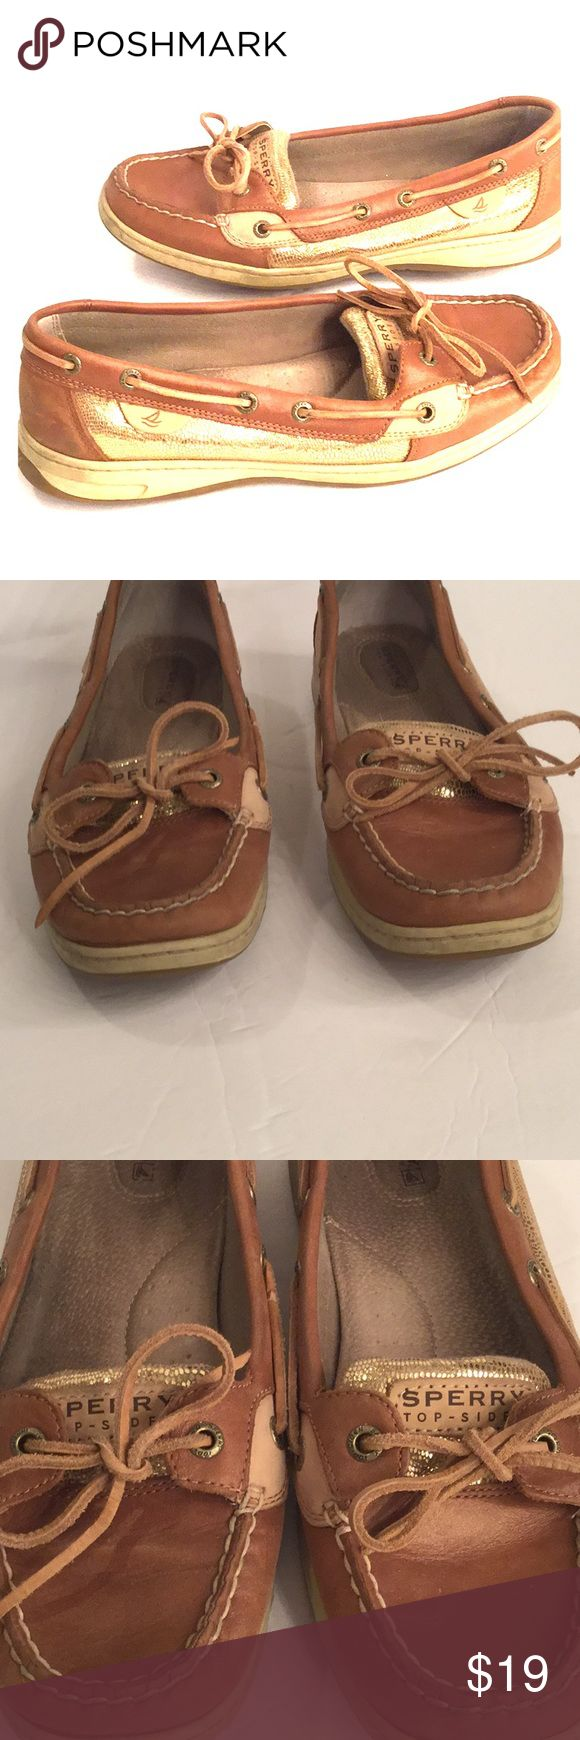 """Sperry Top-Sider Gold/Leather Slides Sperry Top-Sider Gold/Leather Slides. Size 10. Gold/brown/tan. Good preowned condition showing signs of wear (dirt, few marks, see pics of all angles to show exactly what you're receiving). Reasonable offers welcomed using """"Offer"""" button only. Thanks. Sperry Top-Sider Shoes"""